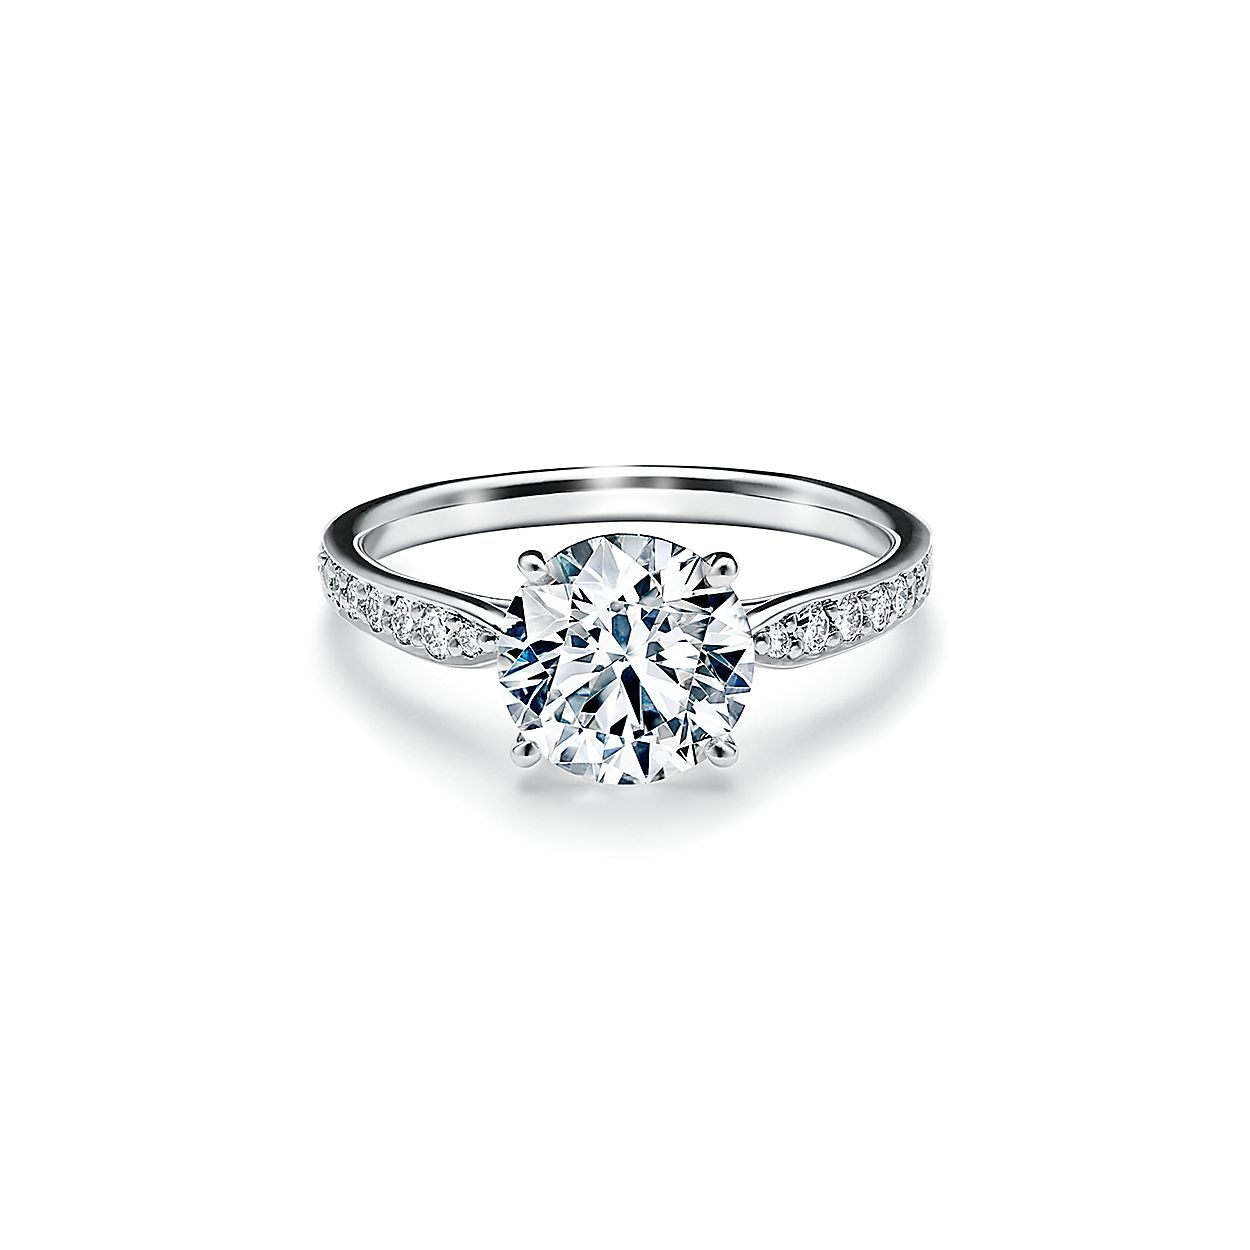 Tiffany Harmony Round Brilliant Engagement Ring With A Diamond Platinum Band